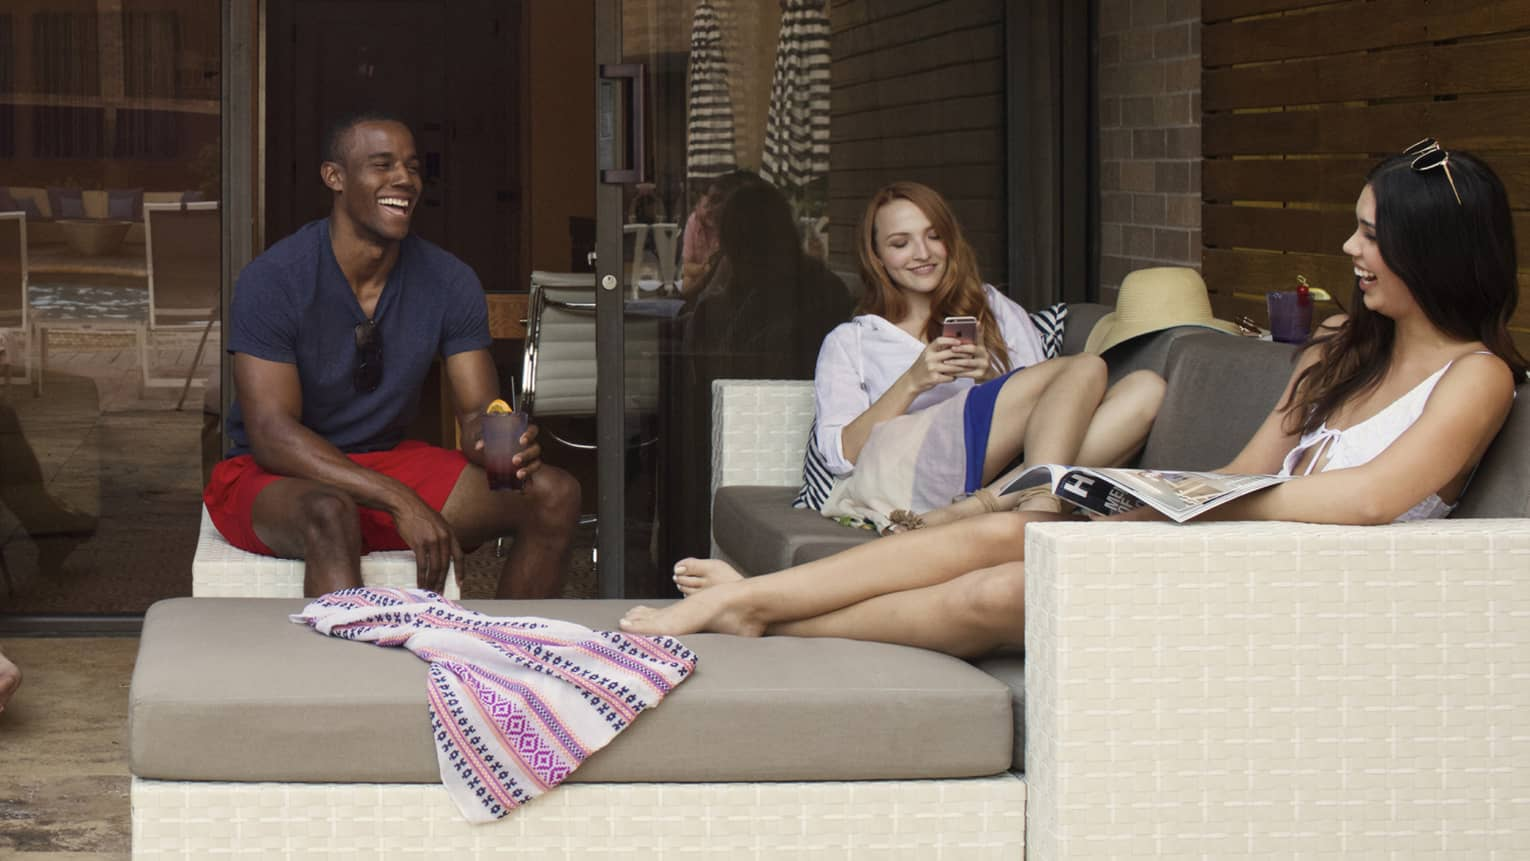 A man and two women laugh on a tan outdoor poolside sectional at four seasons hotel houston